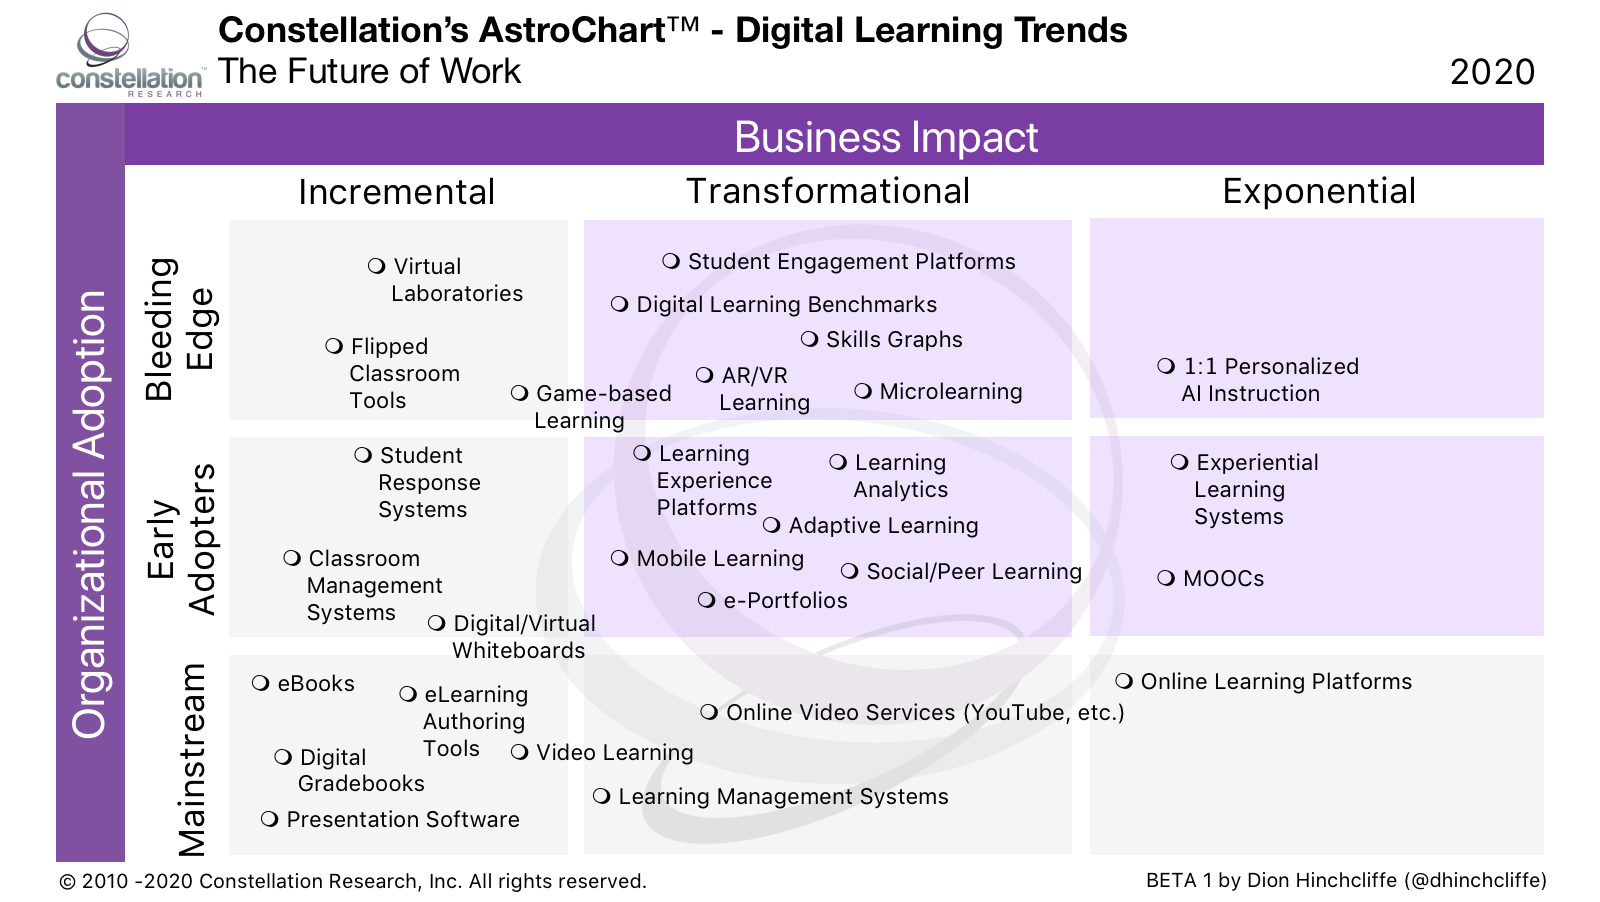 Astrochart of Digital Learning by Dion Hinchcliffe: LMS, Online Learning Platforms, MOOCs, AI, Mobile Learning, Experiential Learning